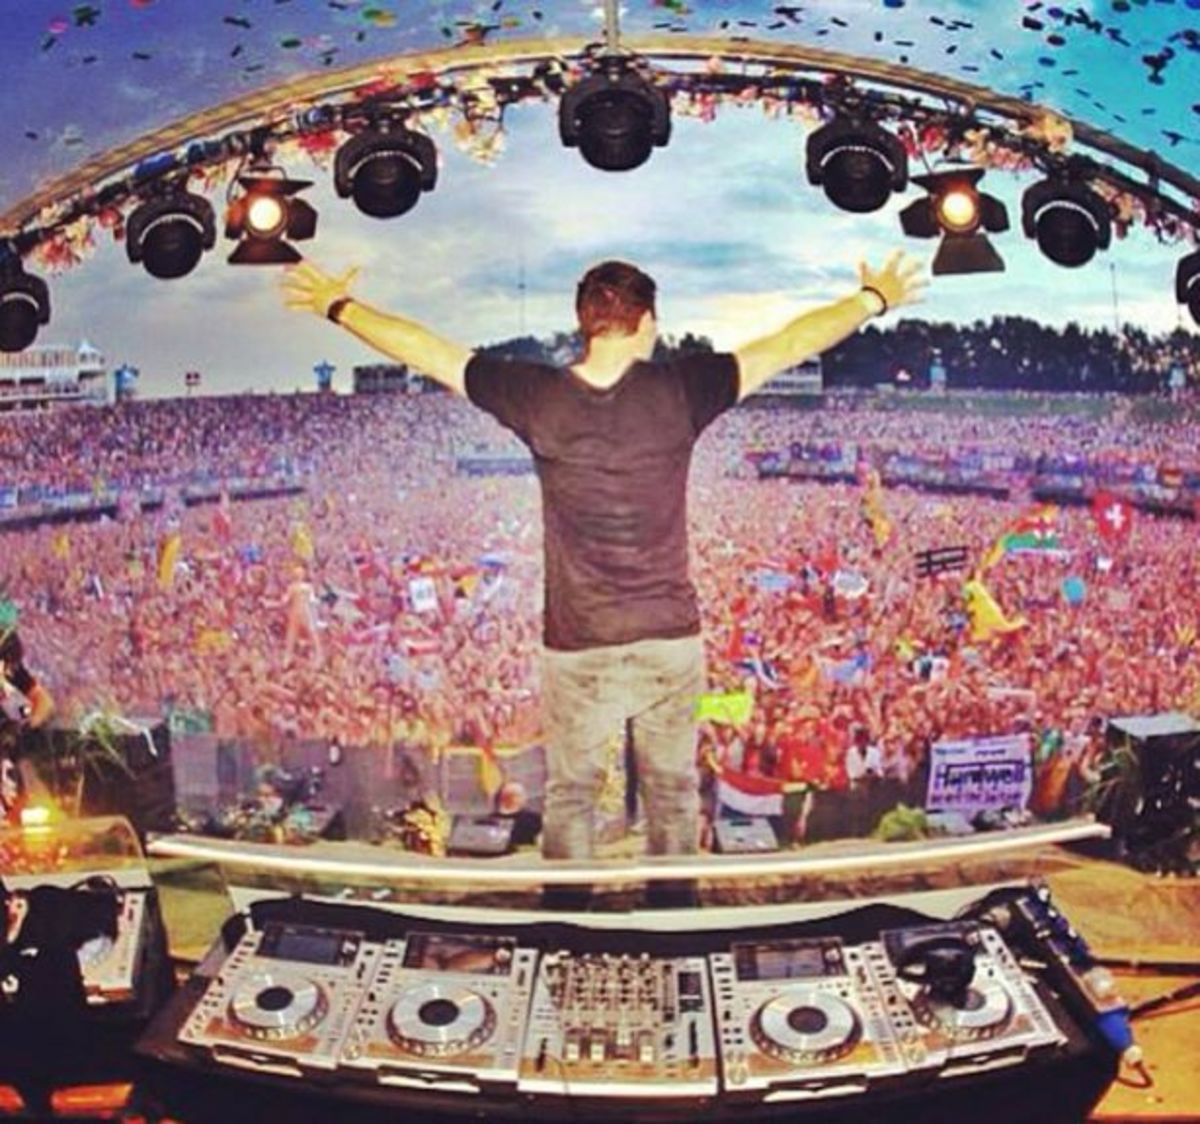 EDM News: Hardwell Shares His Tomorrowland Set On His YouTube Channel To EDM Culture Fans Worldwide